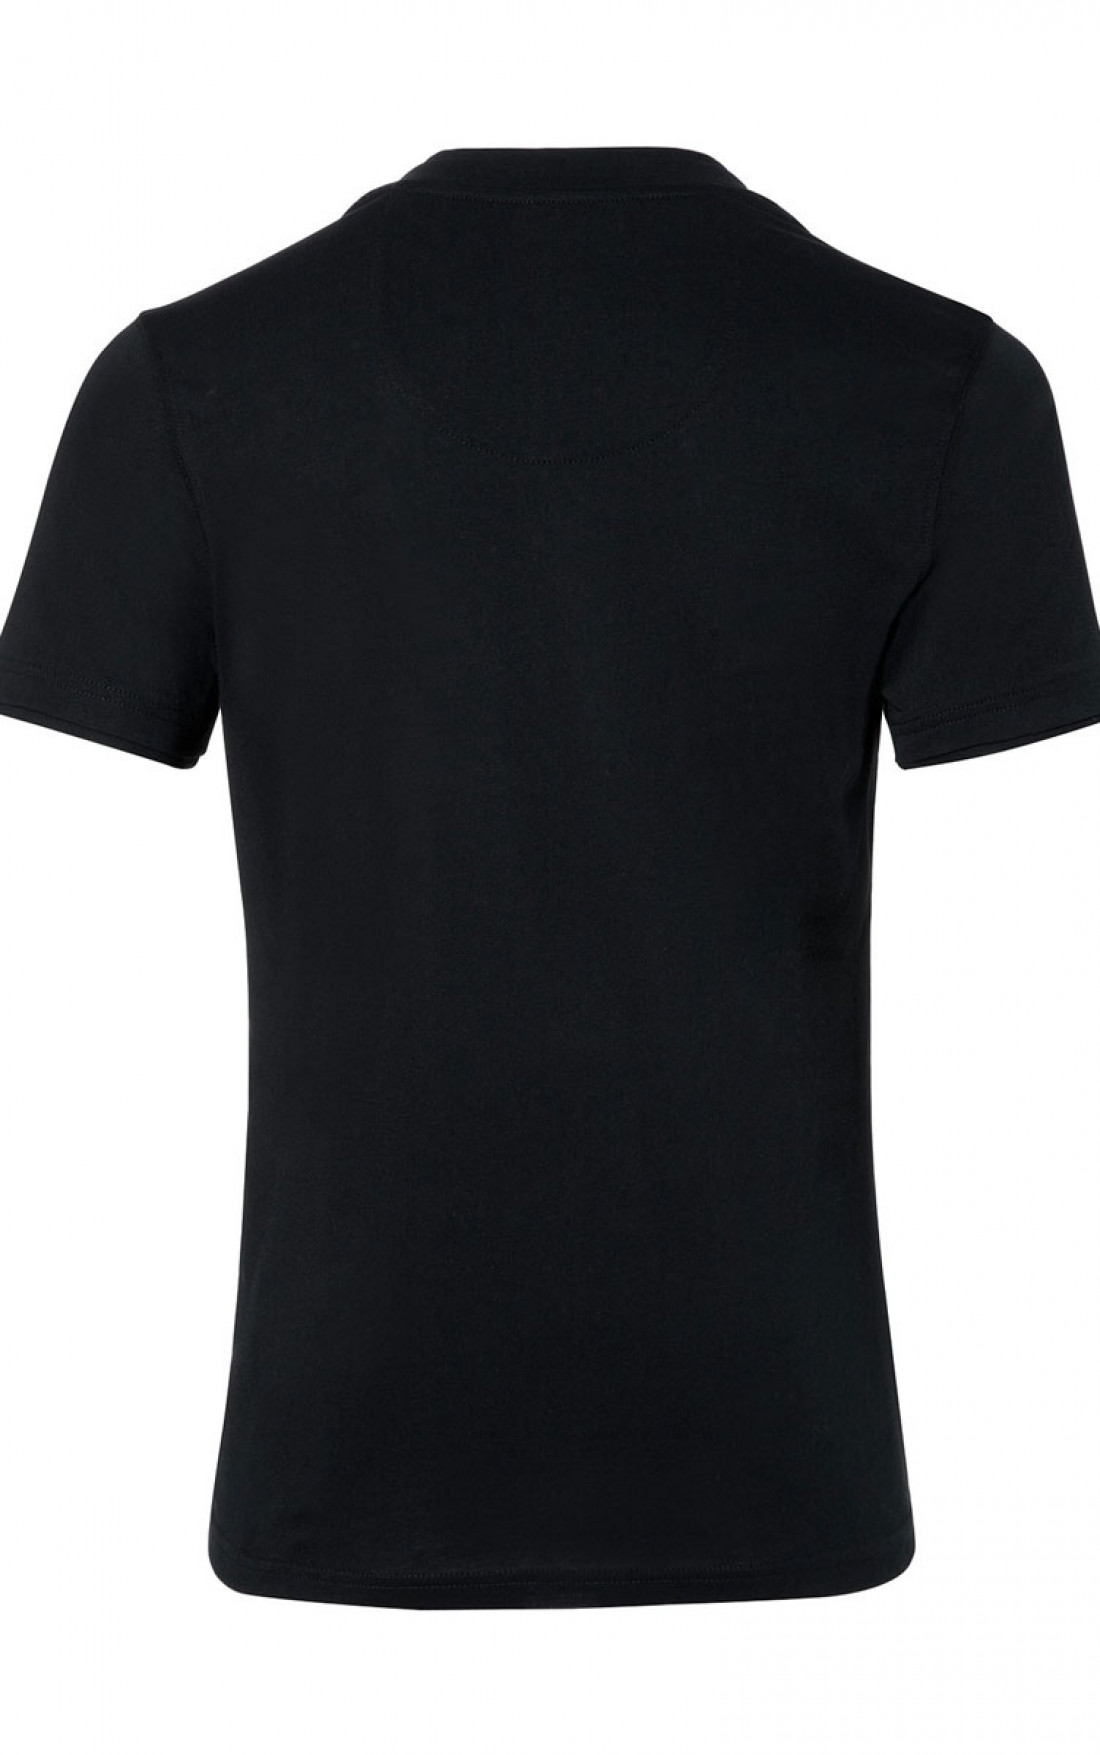 Philipp plein 39 noncommited 39 v neck t shirt black mens V neck black t shirt